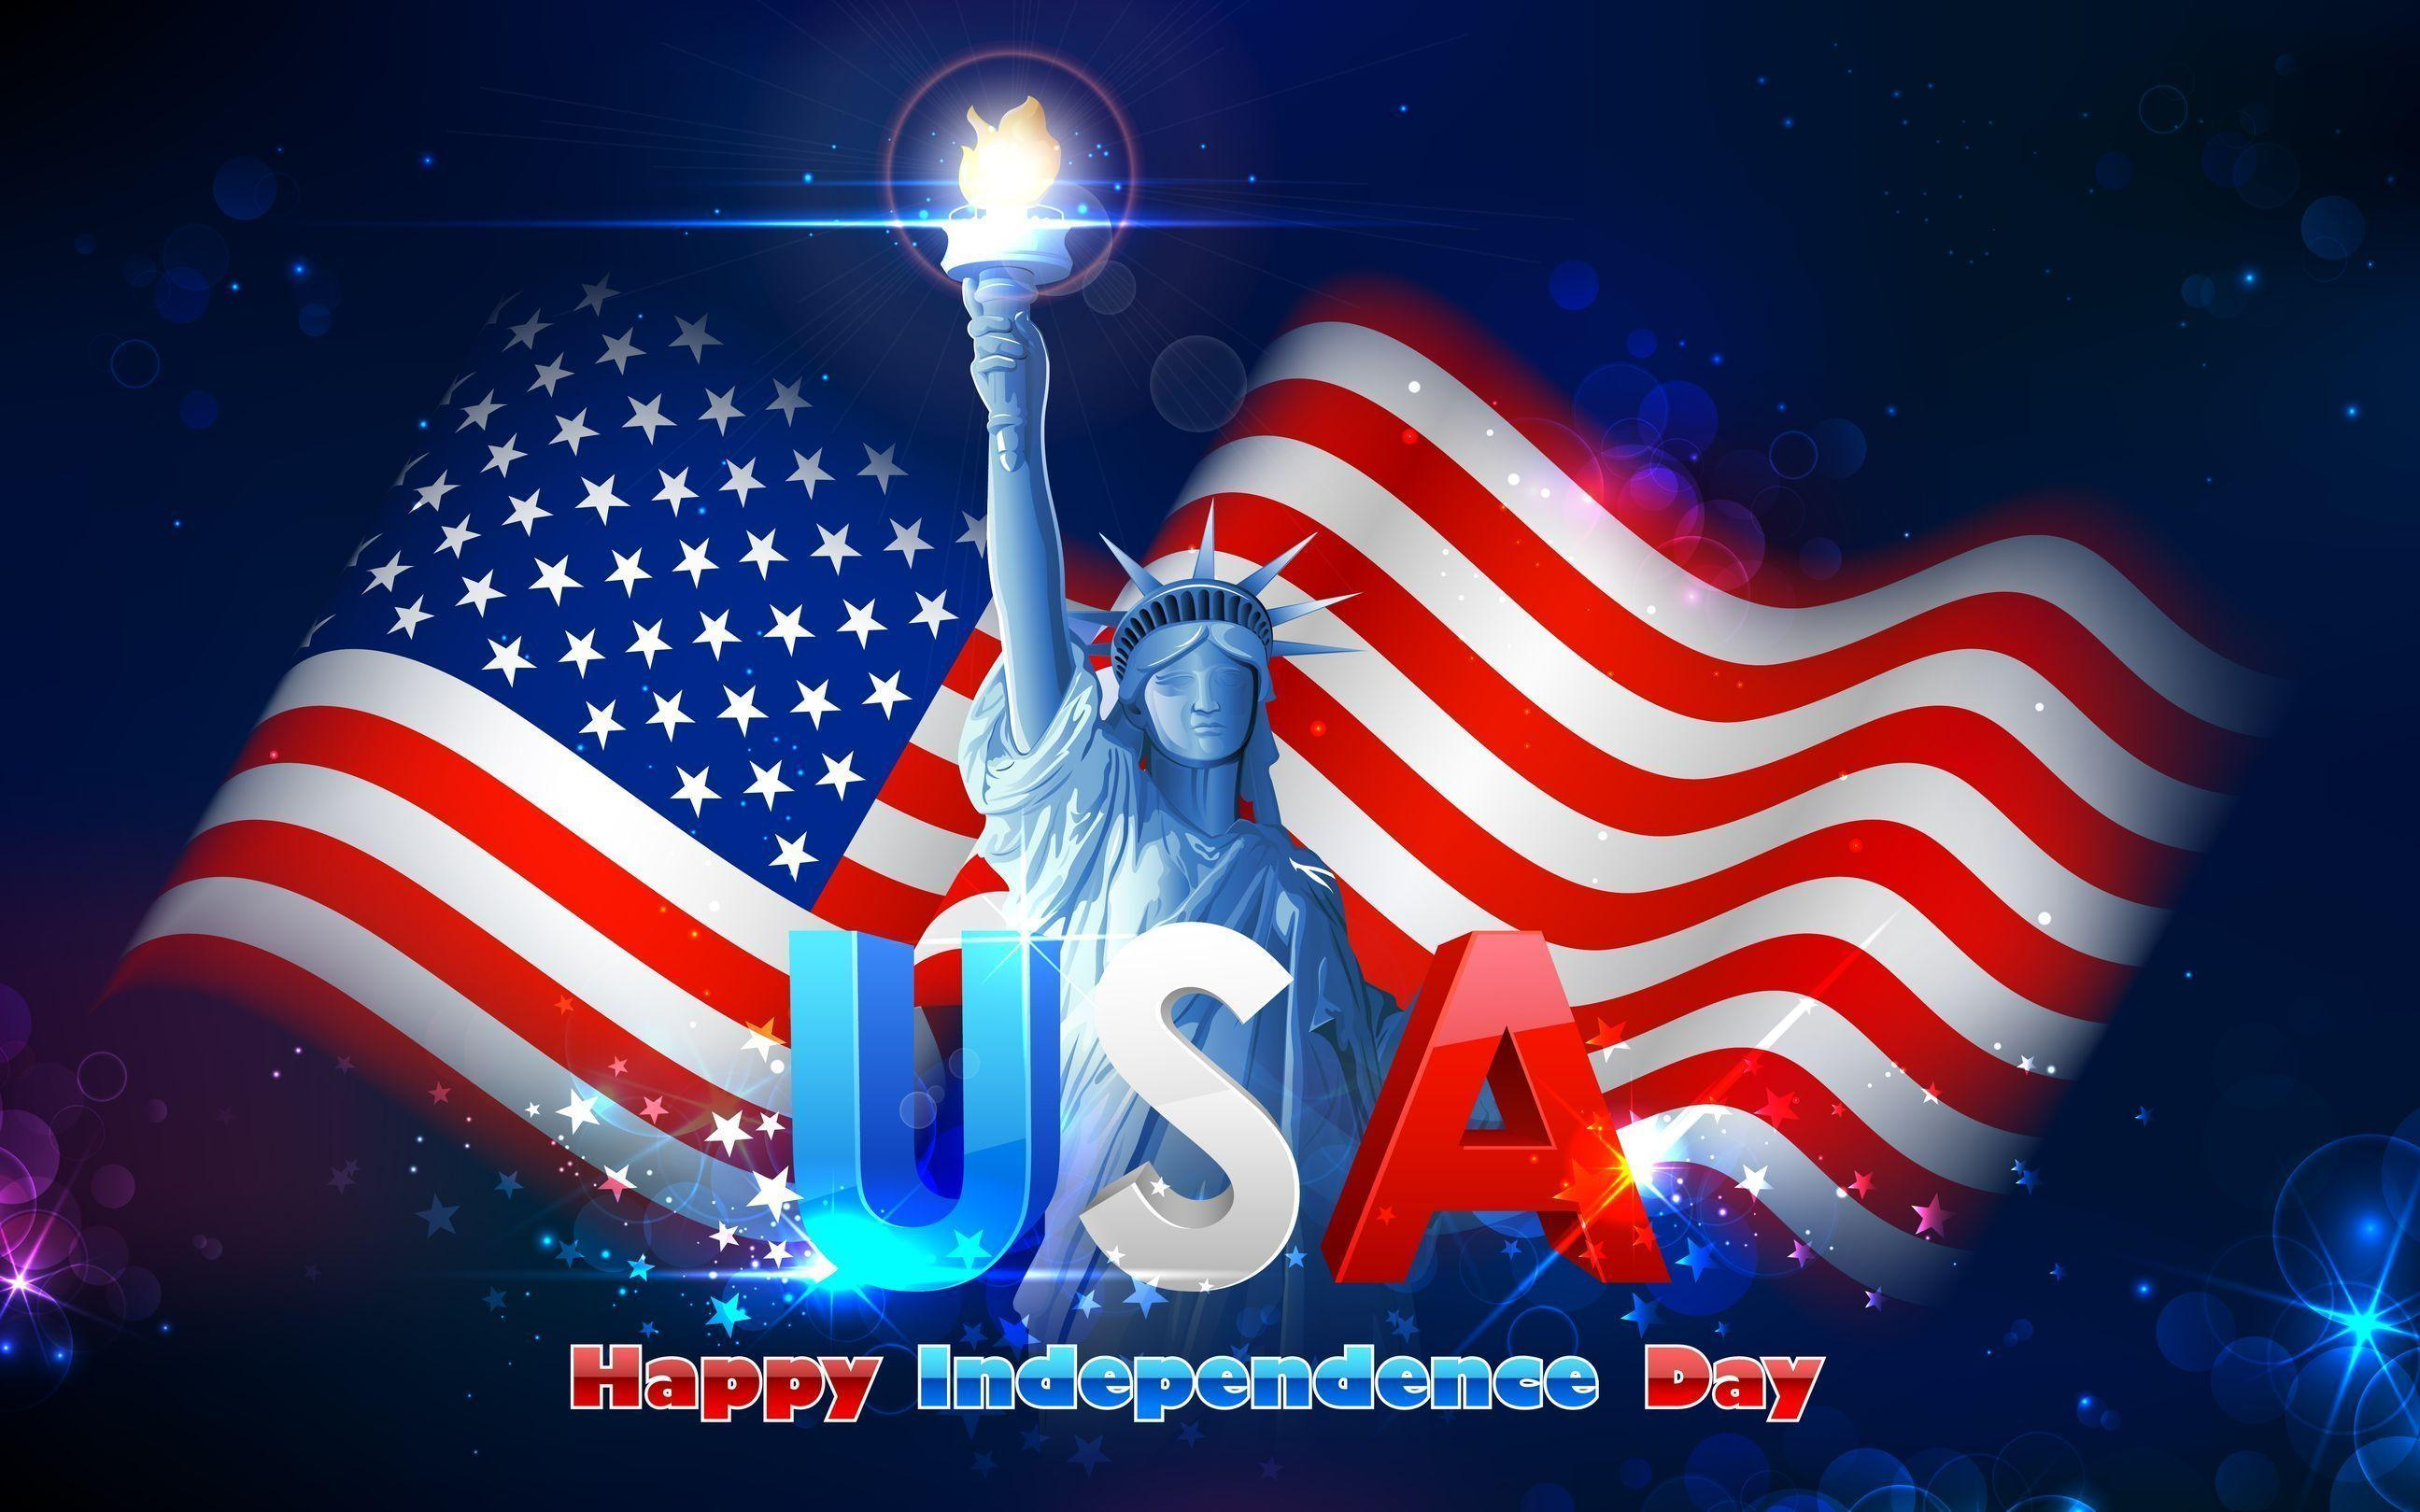 4th July Live Wallpaper FREE